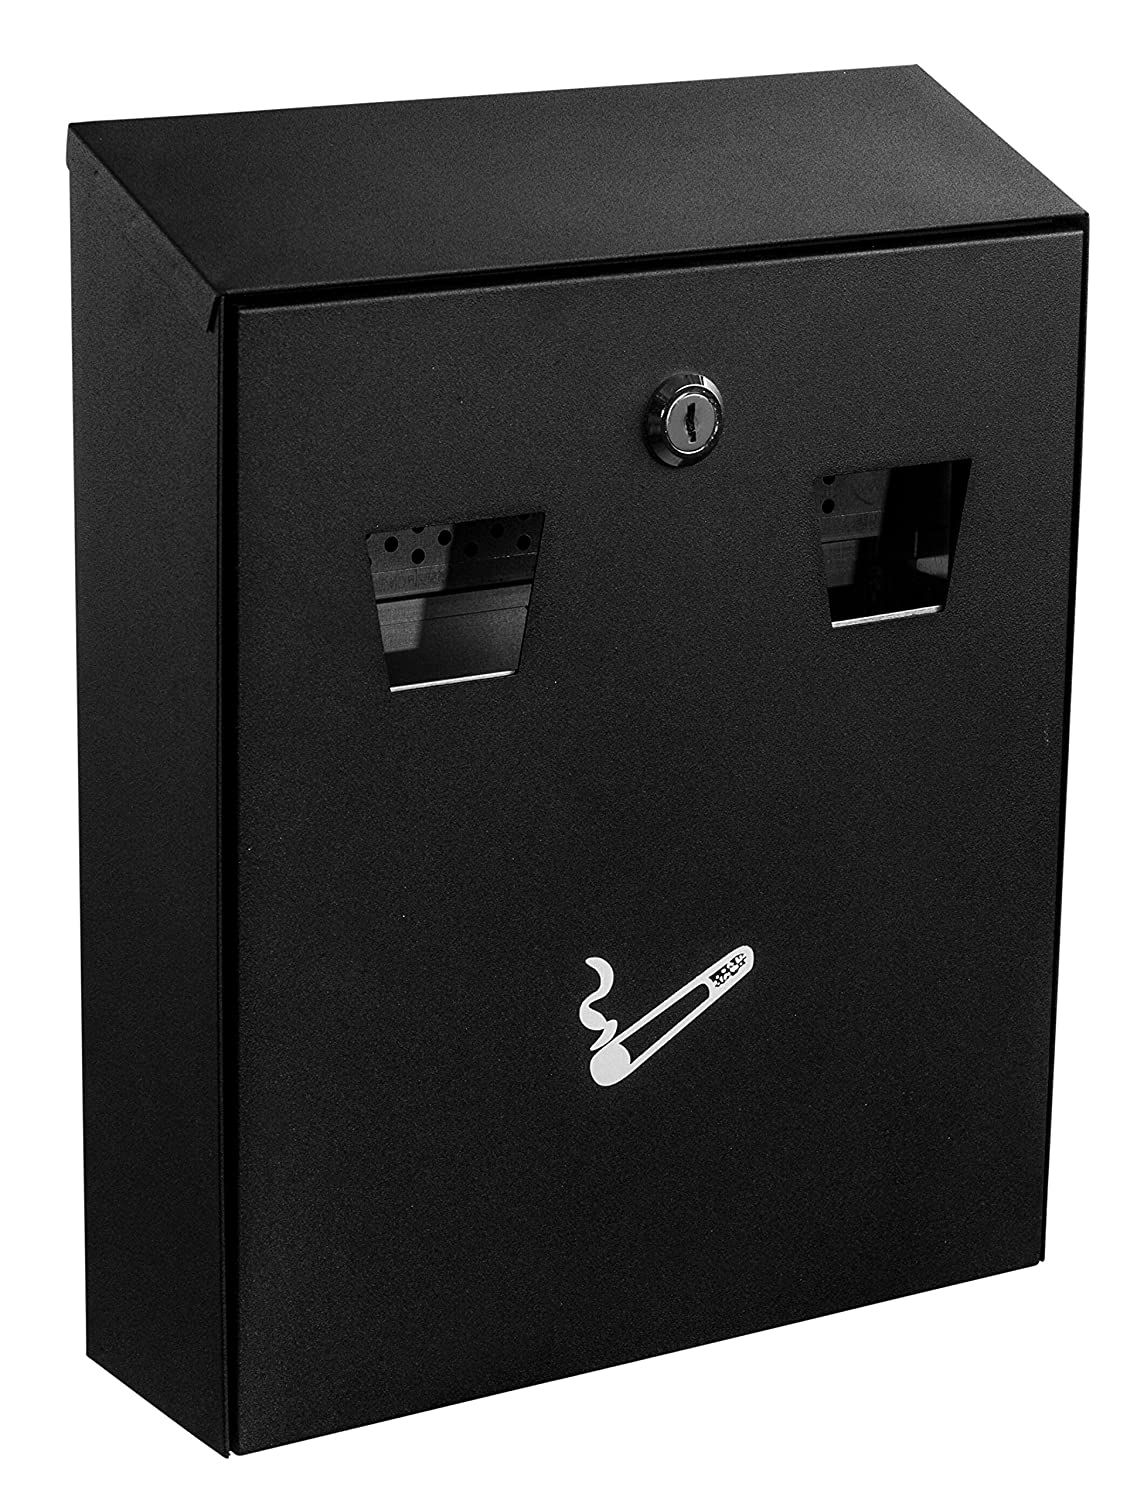 Alpine Industries Cigarette Butt Receptacle - Smoker Disposal Station - Eliminates Odor - Wall Mounted Receptacle Box - Easy Cigarette Waste Accommodation - for Outdoor Use (Black)